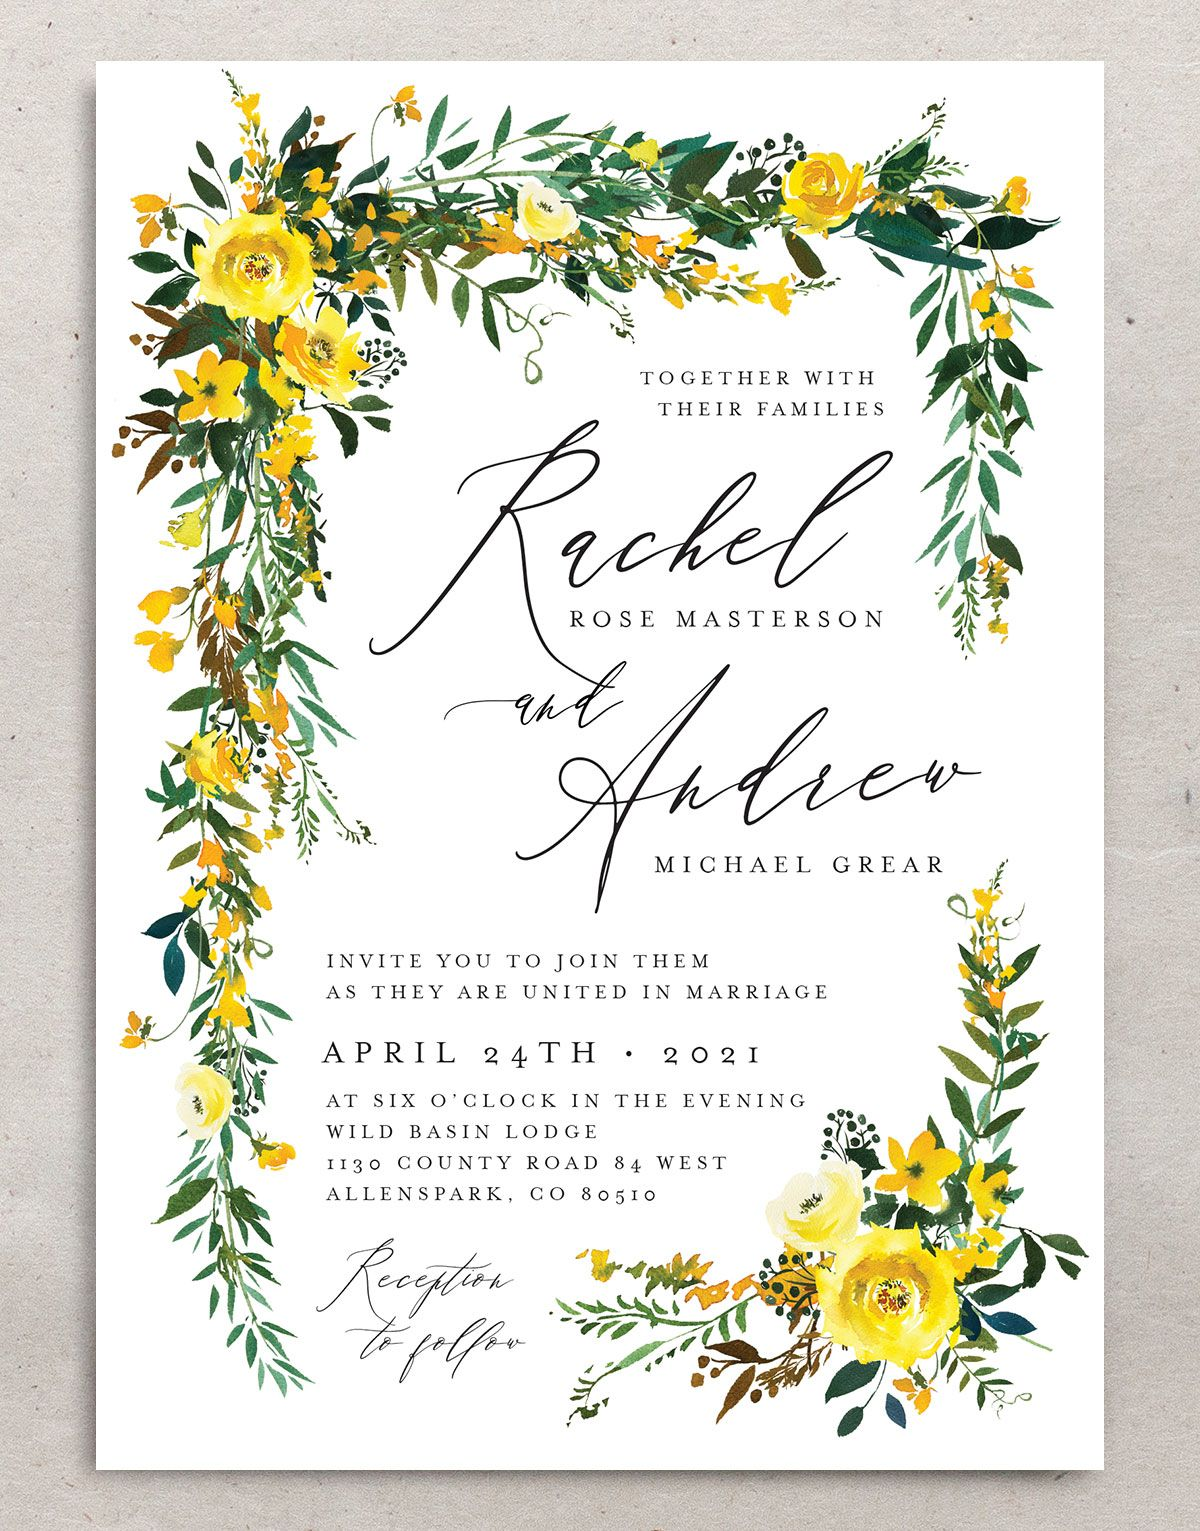 Cascading Altar wedding invites in yellow